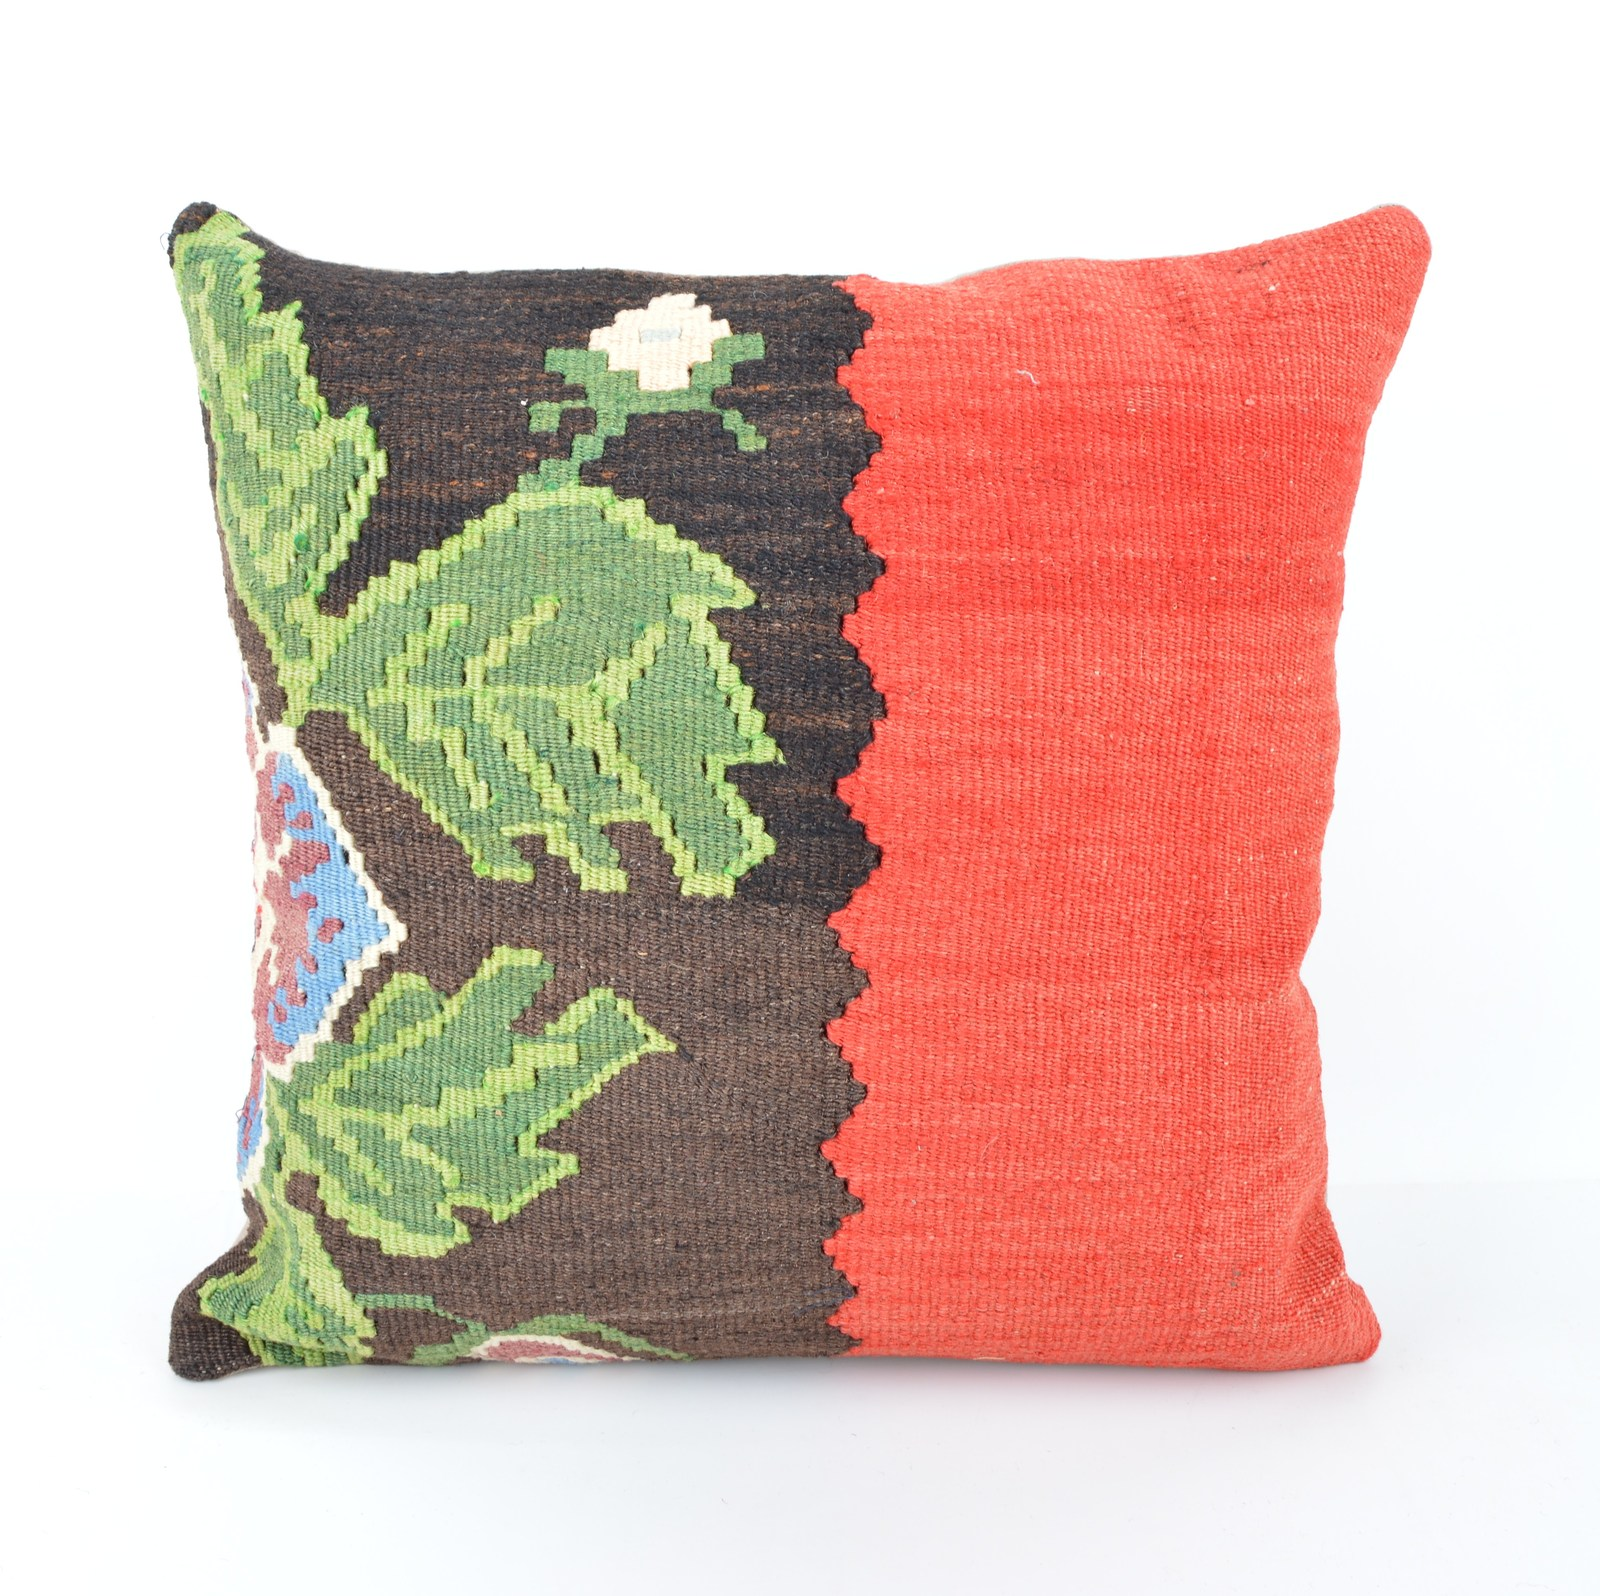 Decorative Lumbar Pillows Green : 16x16